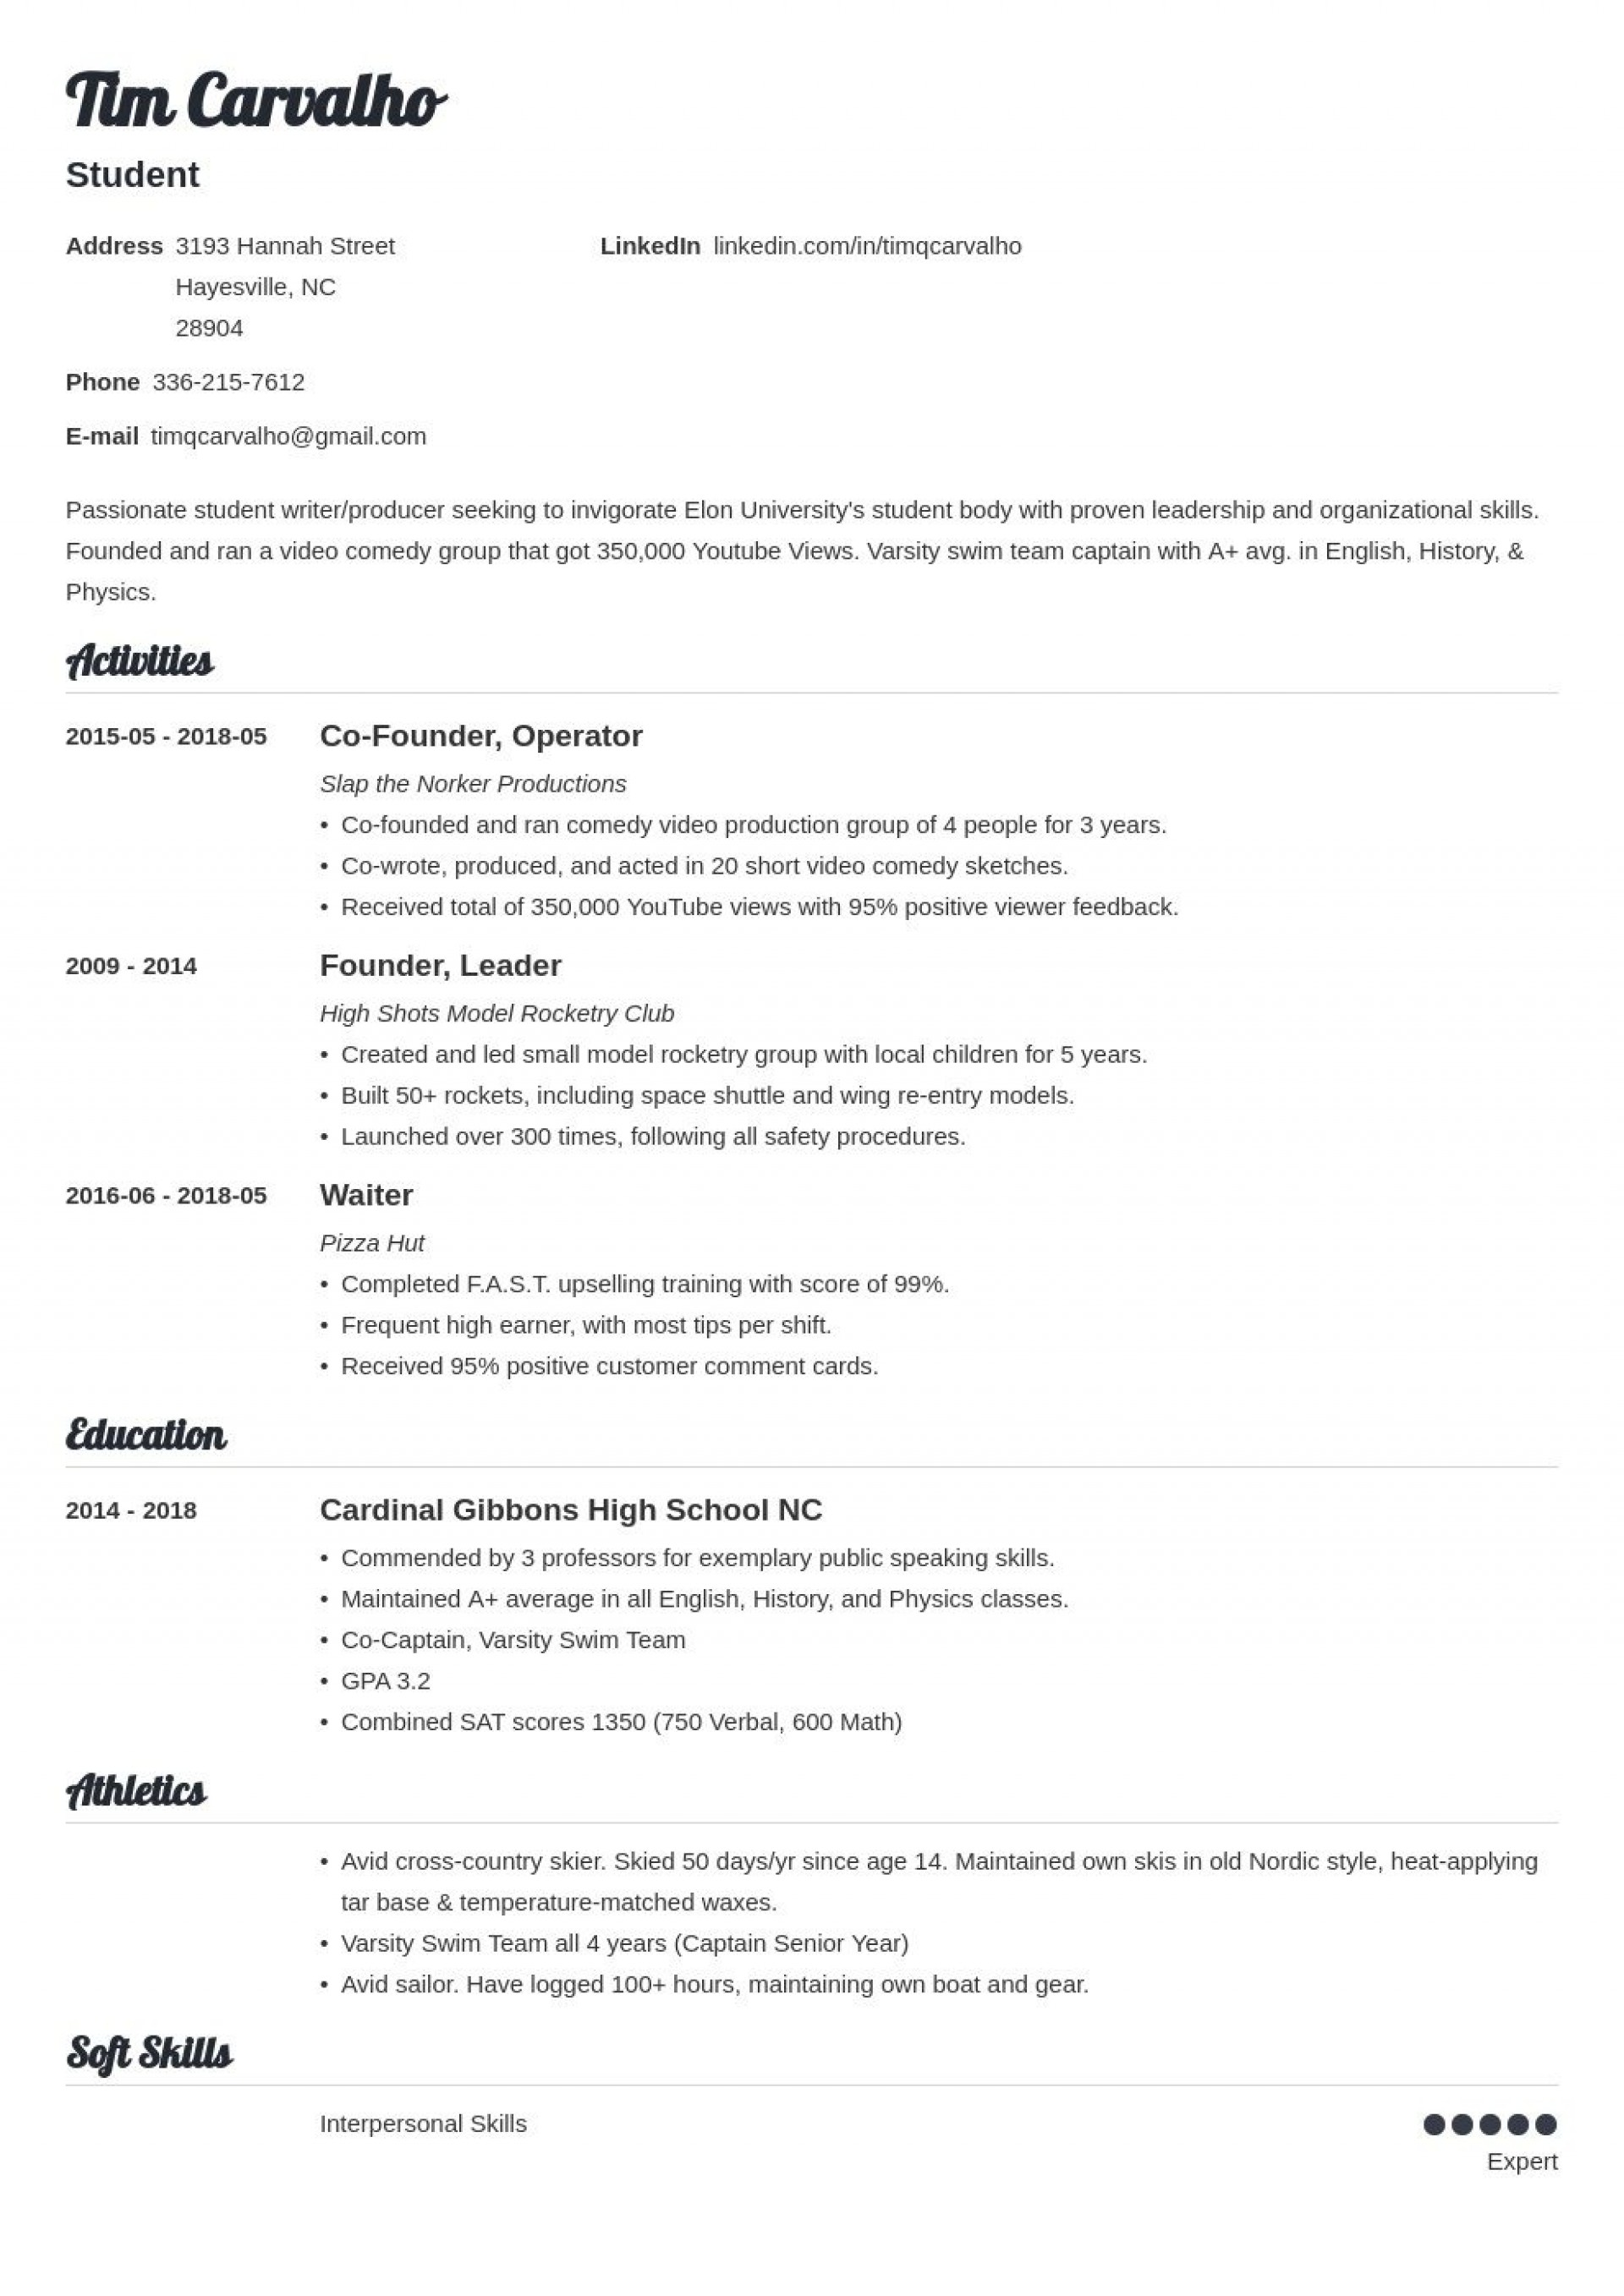 006 Stupendou Resume For College Application Template Highest Quality  Templates1920